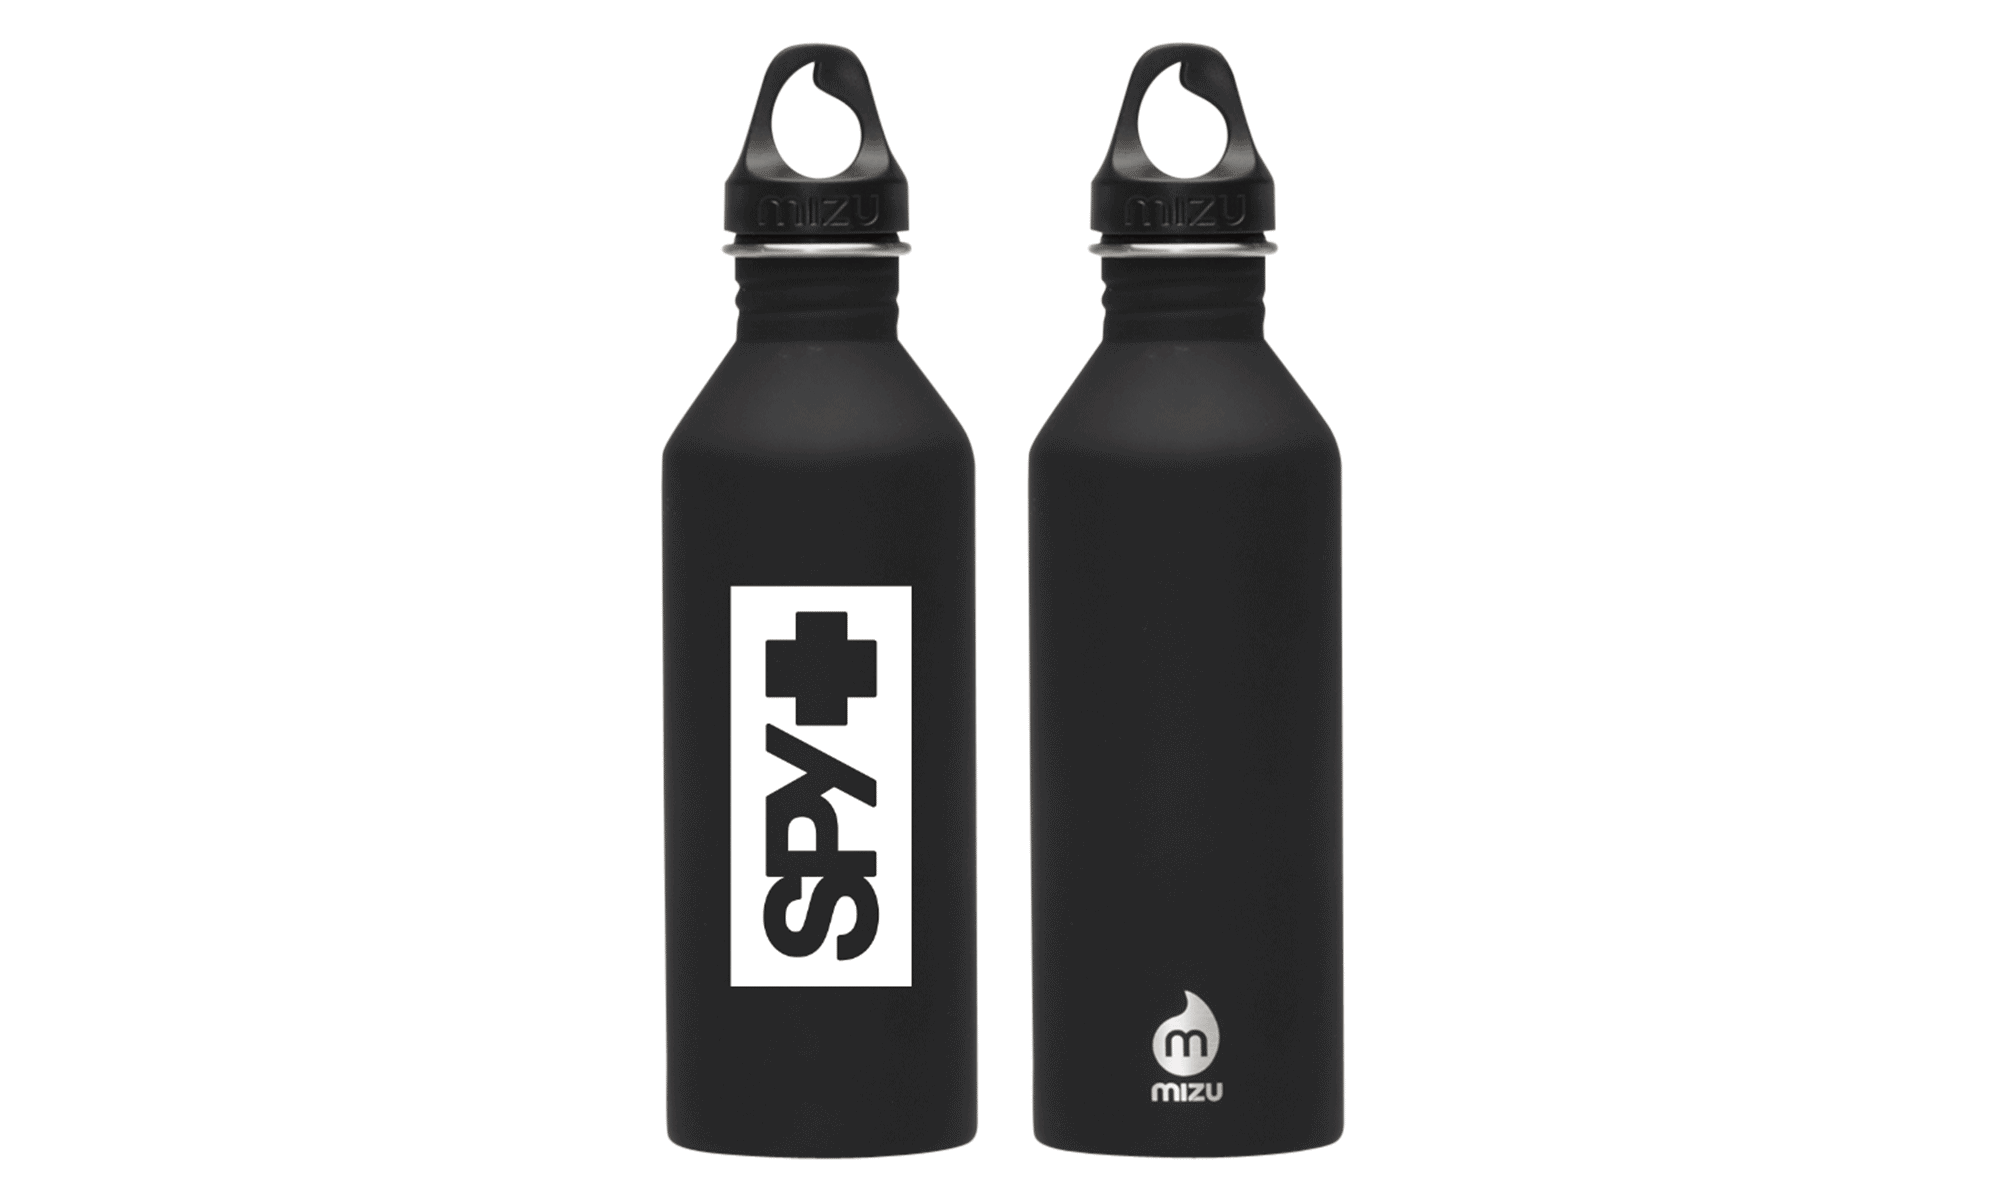 dc7f959203 Mizu Water Bottles Review - Image Collections Bottle